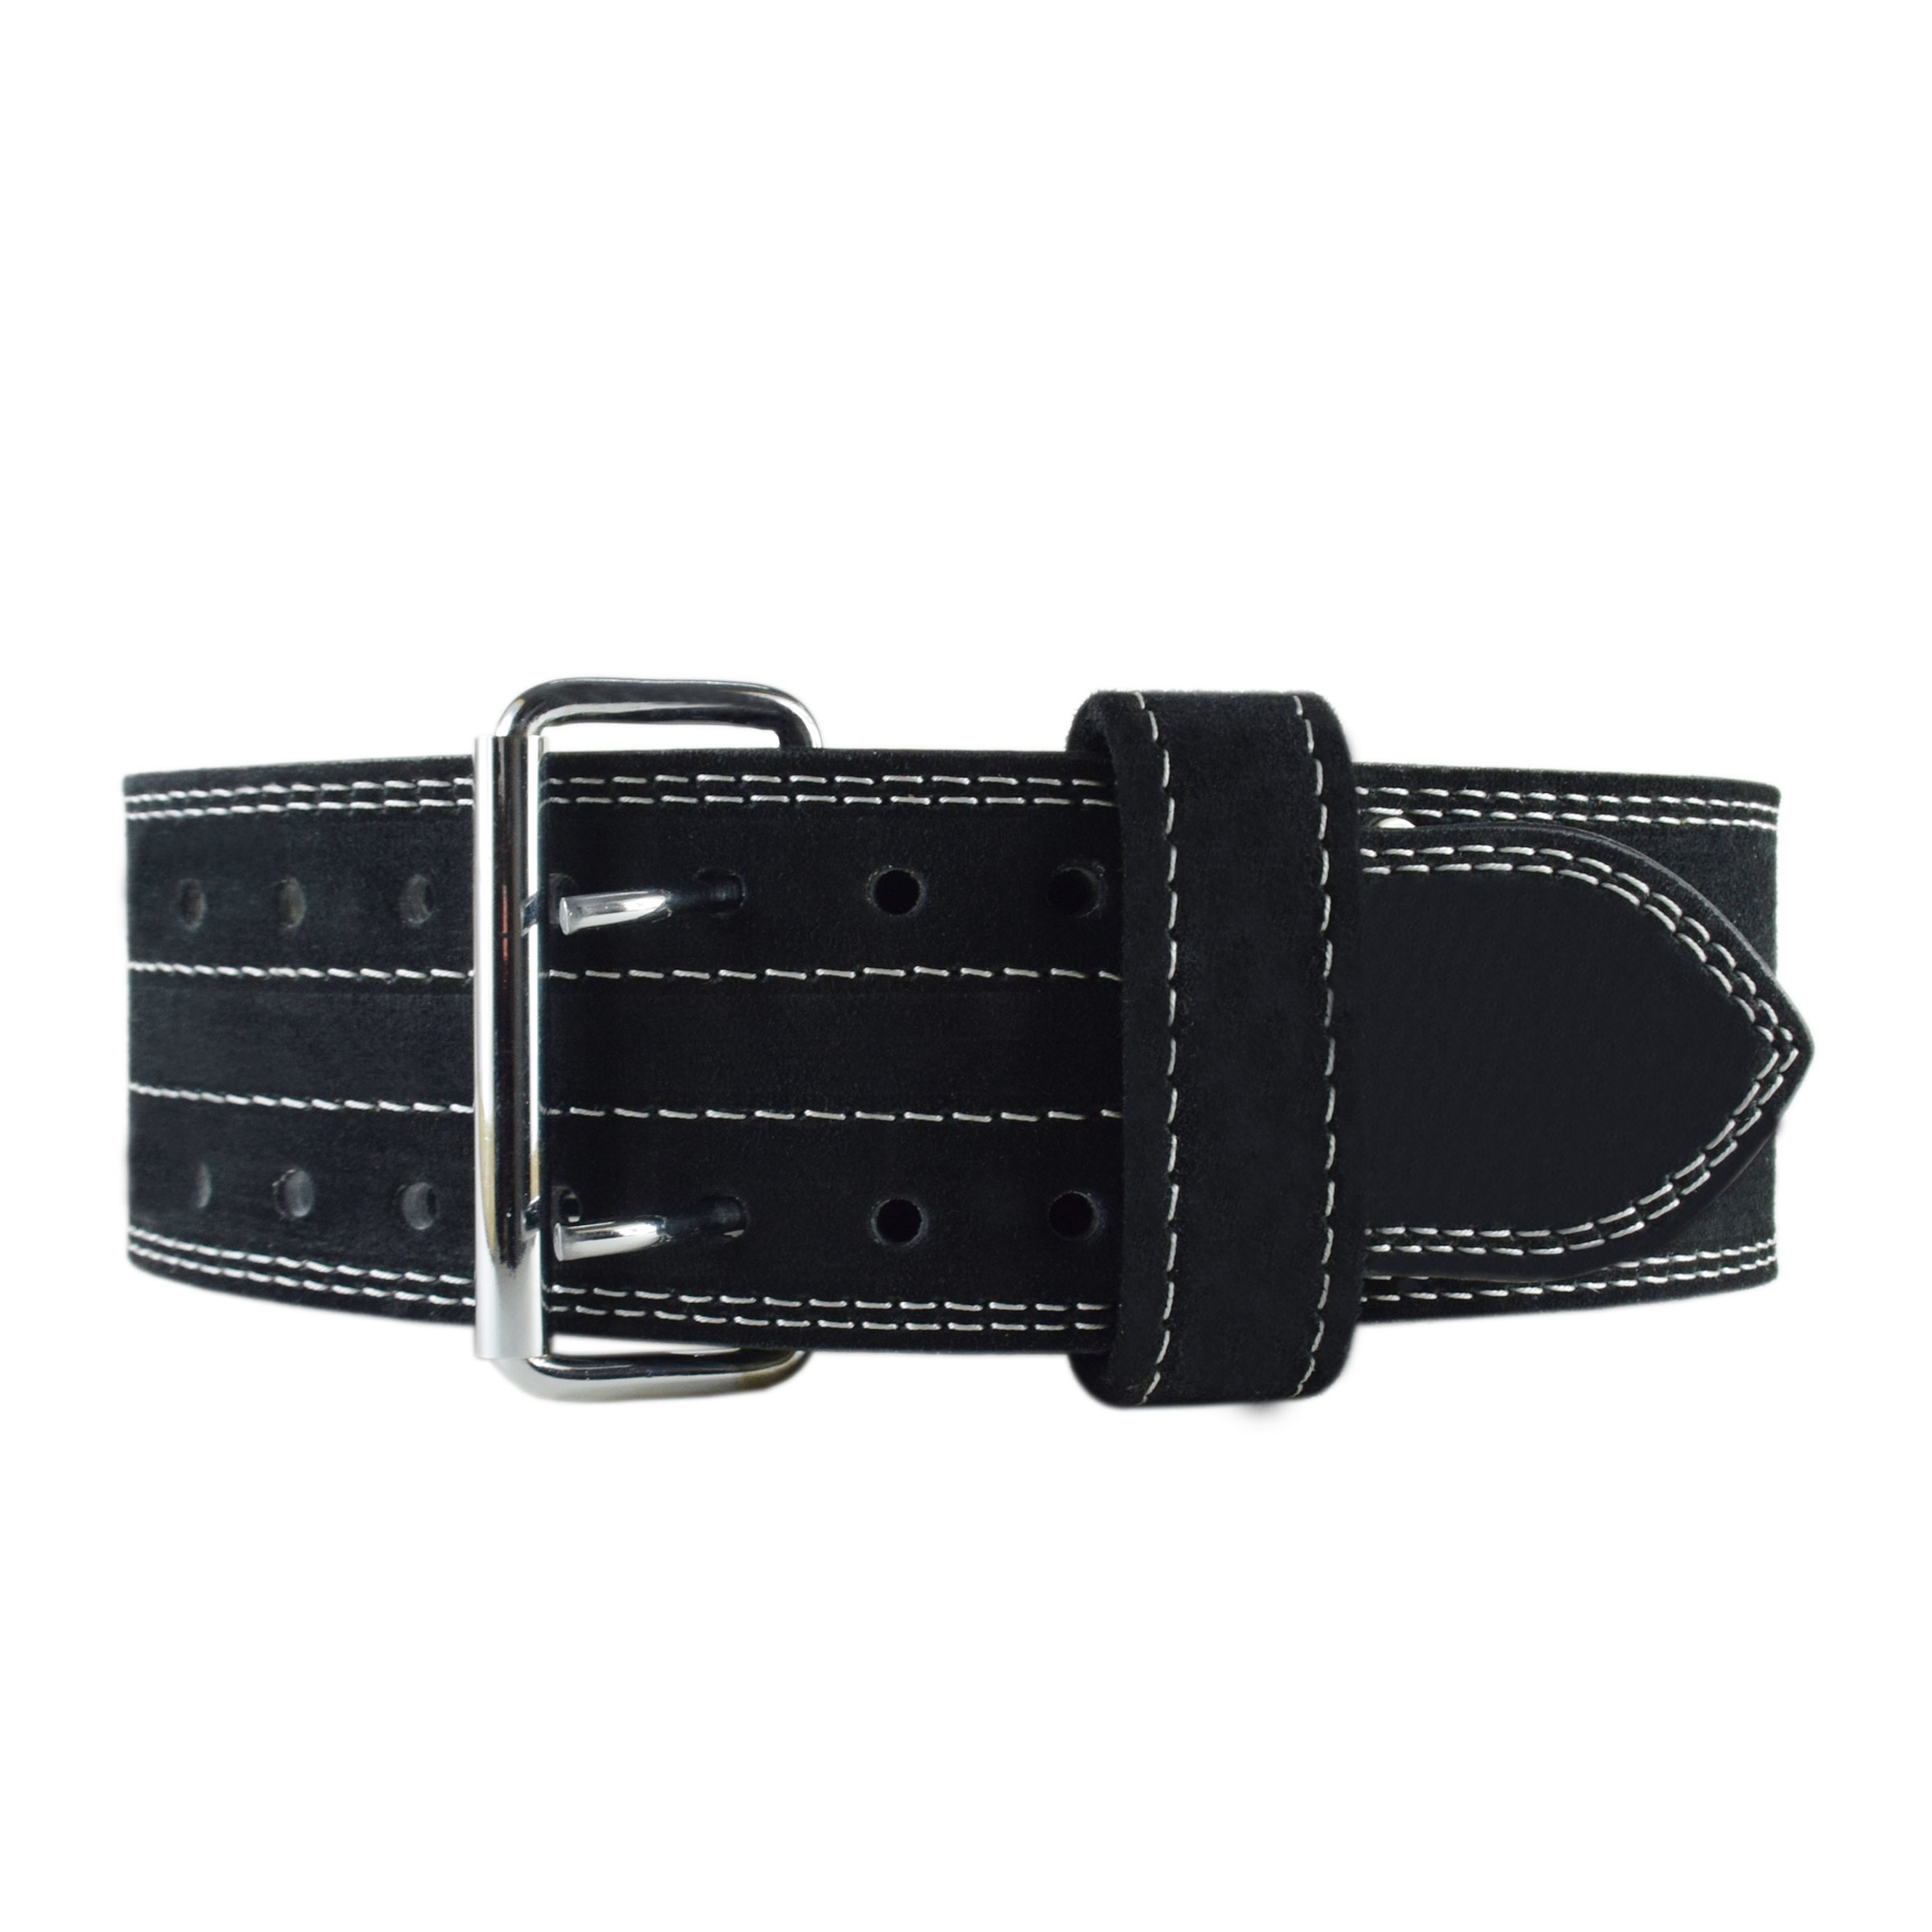 BLACK WEIGHTLIFTING BELT